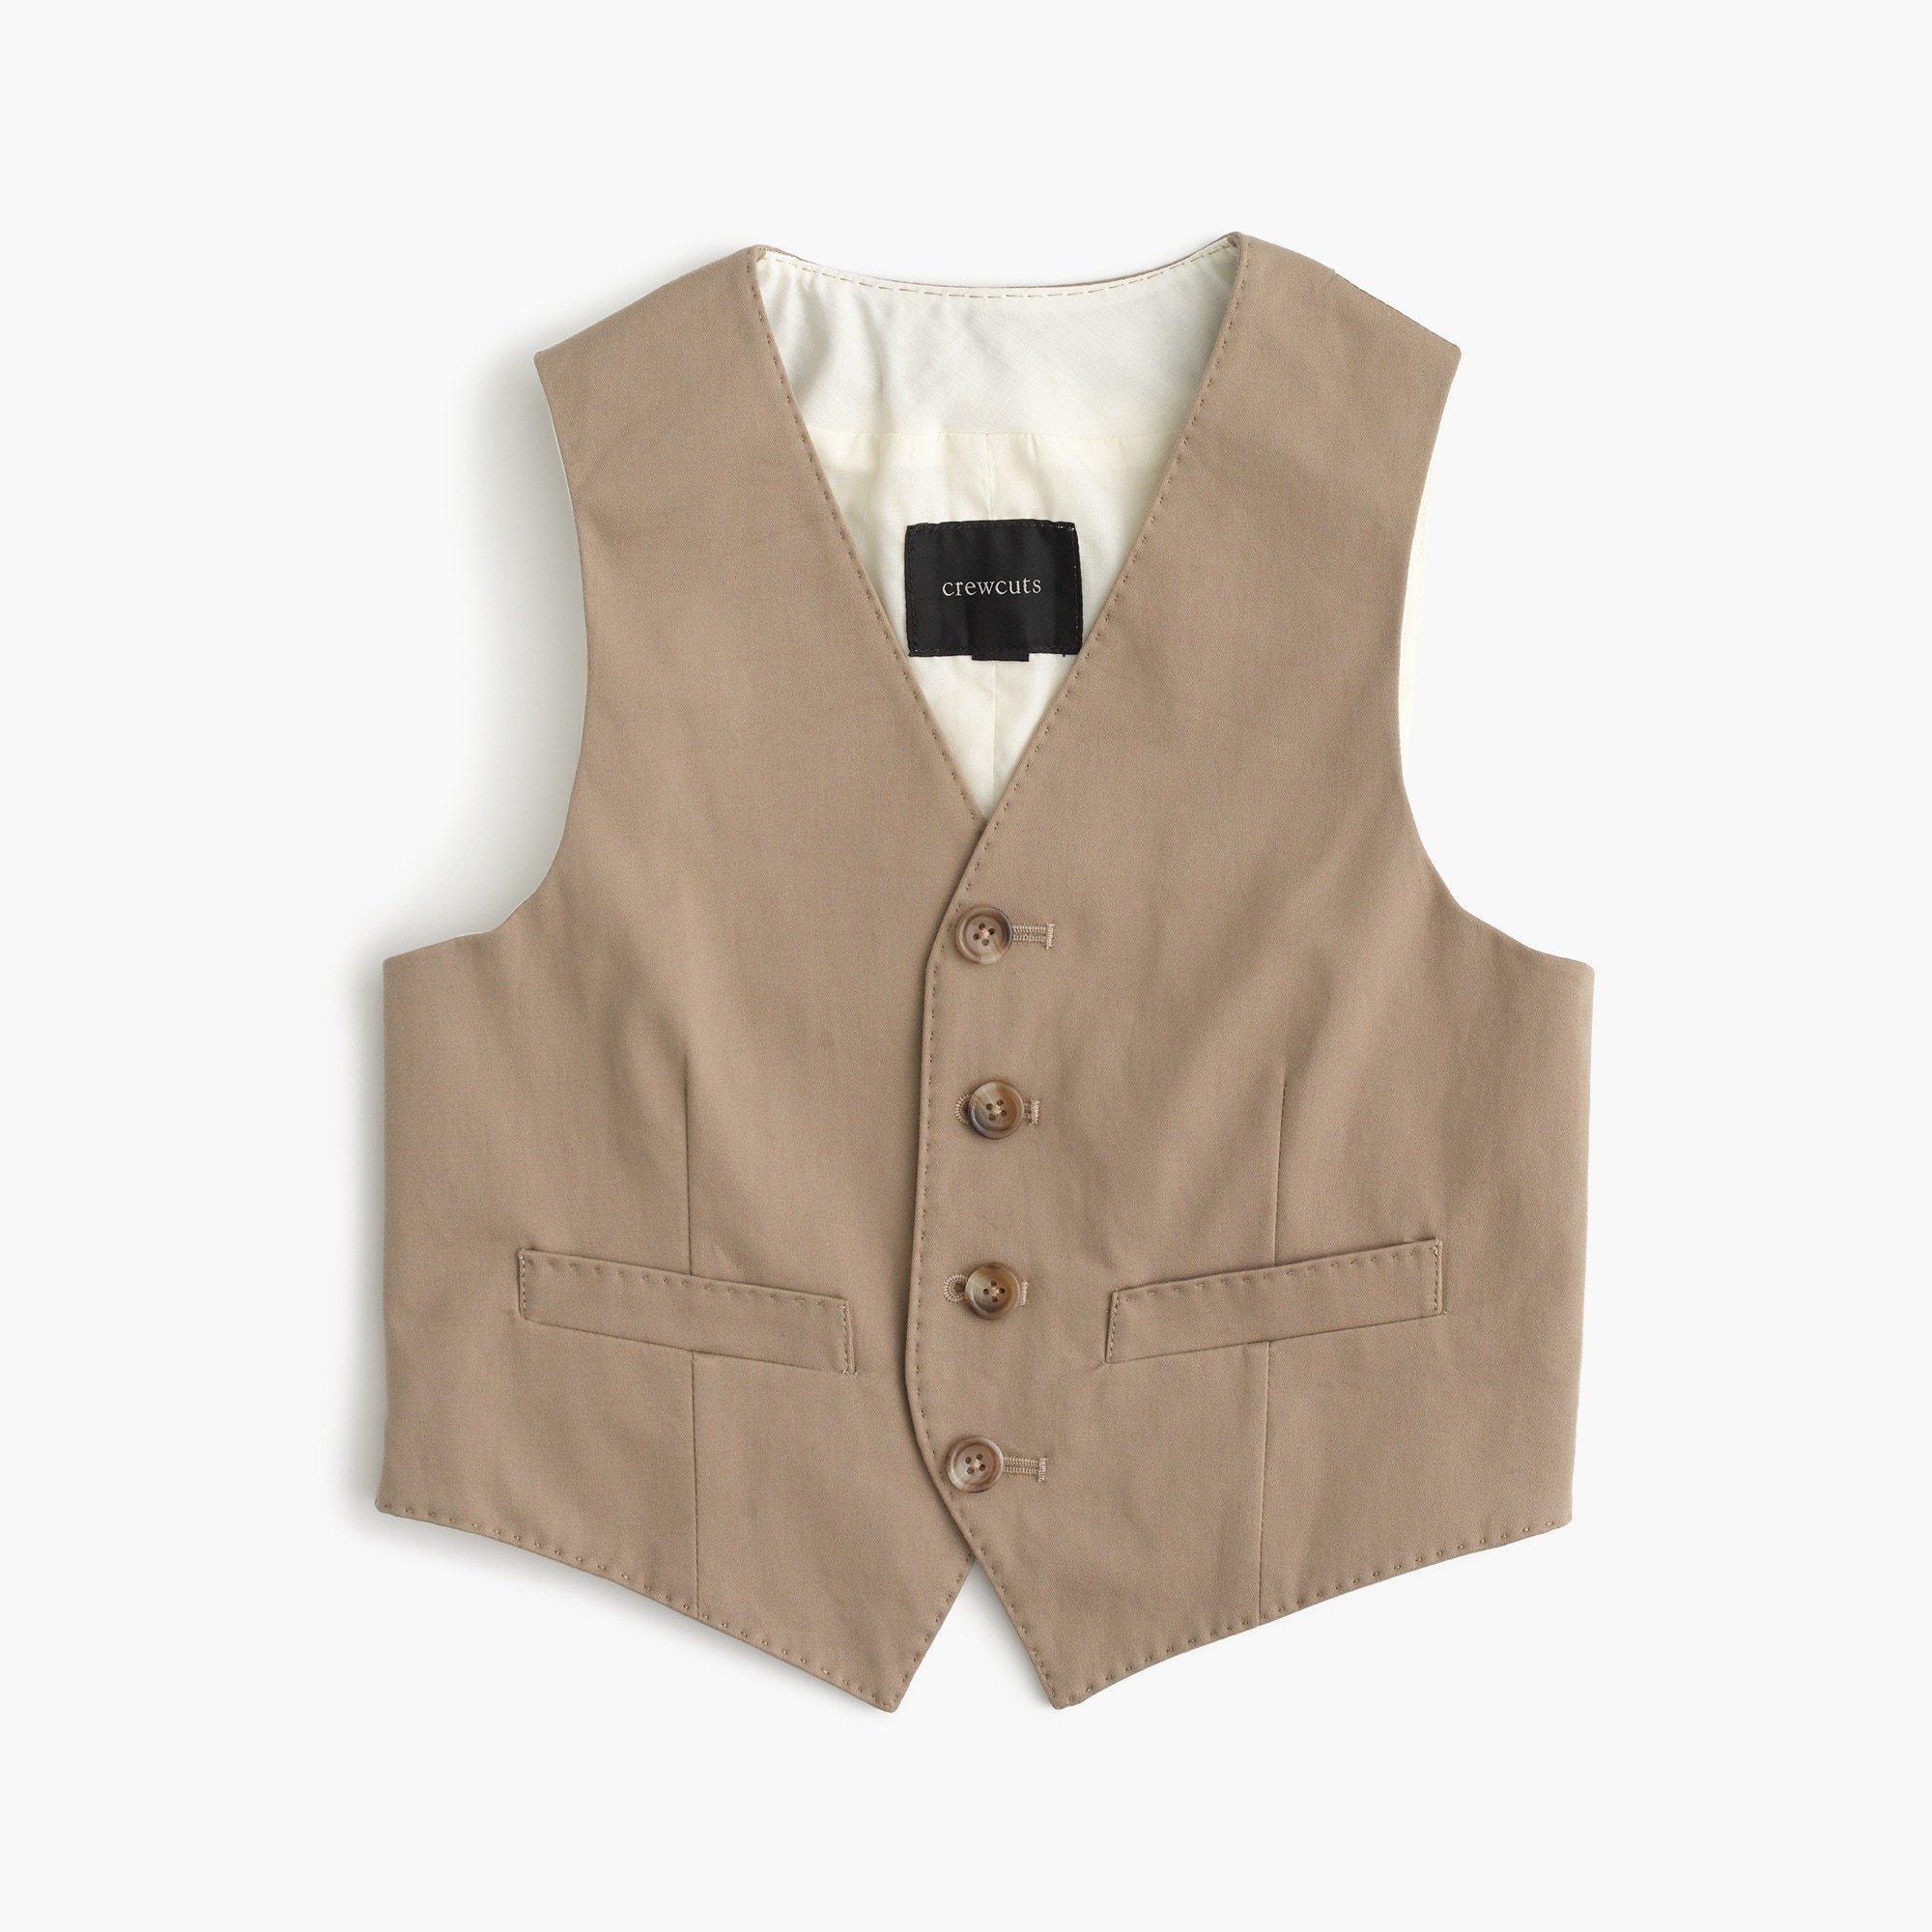 Boys' Ludlow suit vest in Italian stretch chino